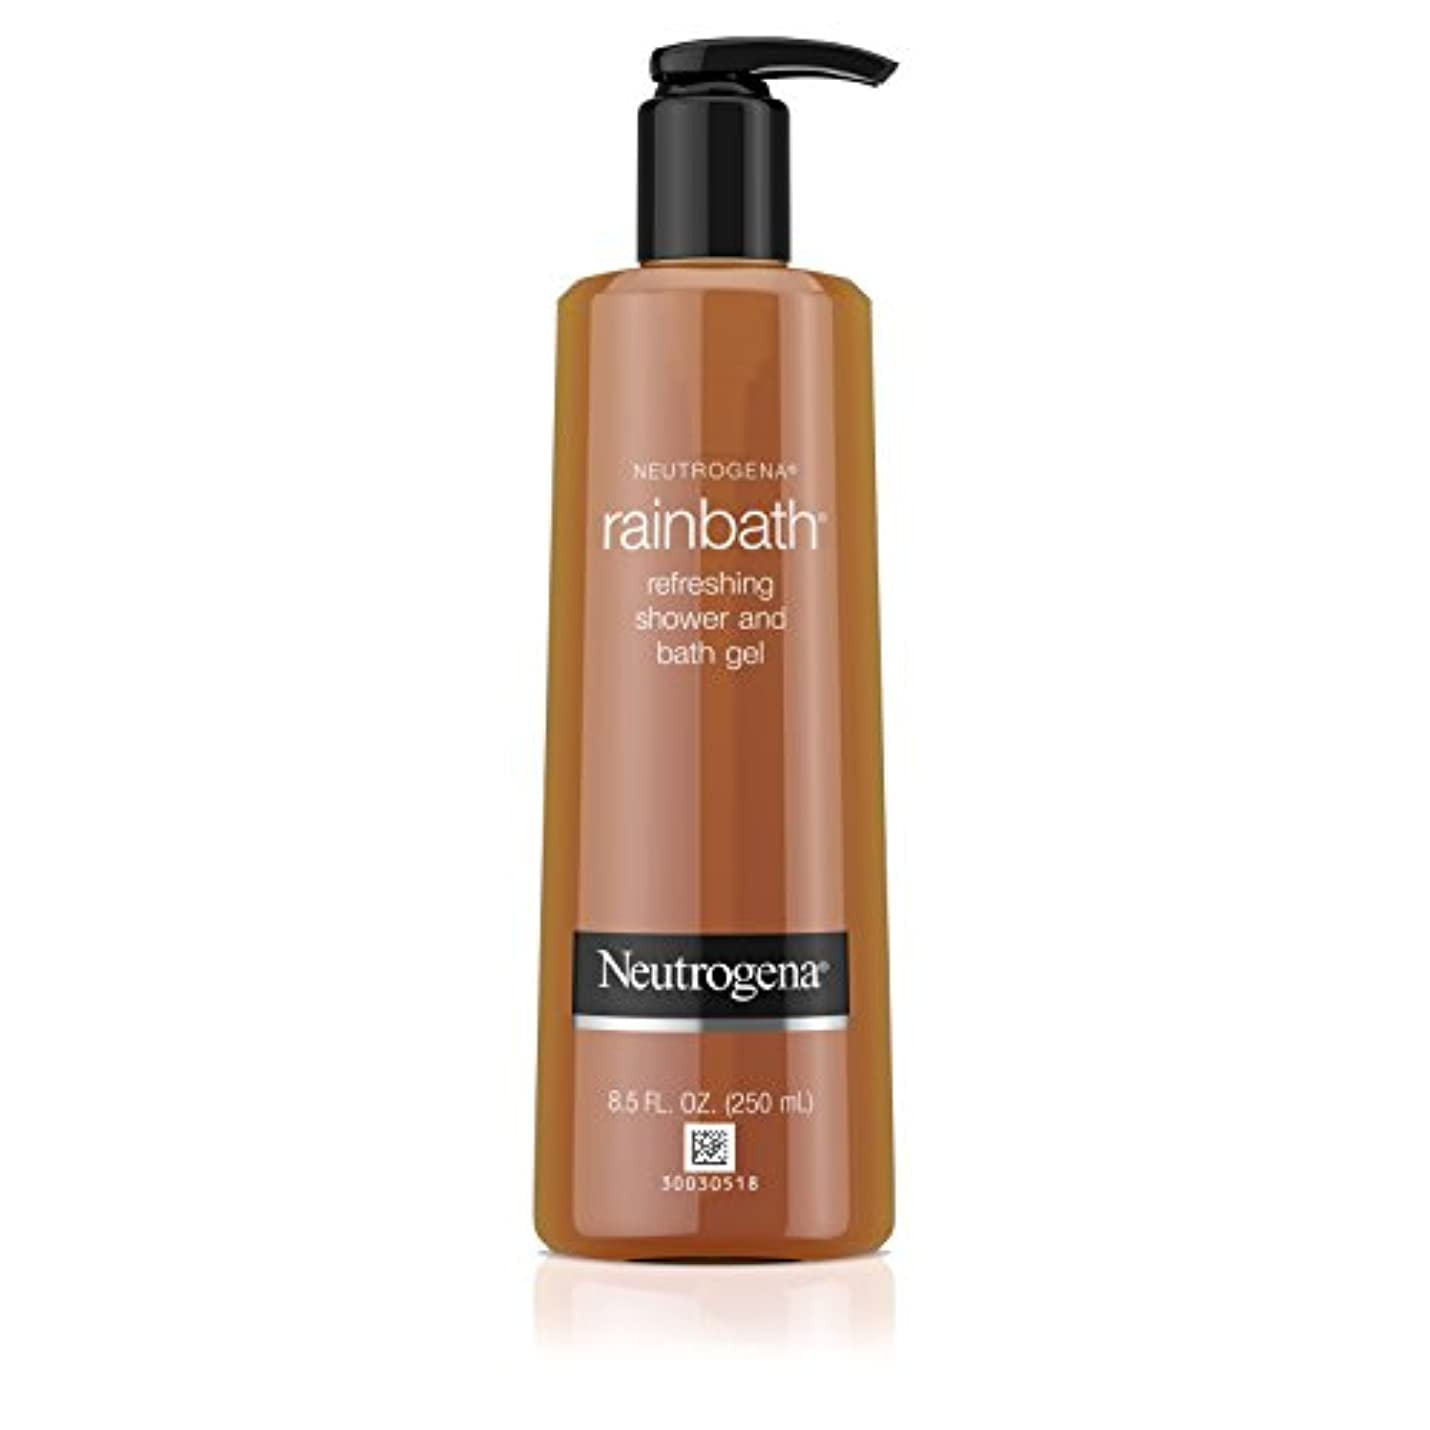 行方不明十代の若者たち海Neutrogena Rainbath Refreshing Shower And Bath Gel (Body Wash), 250ml